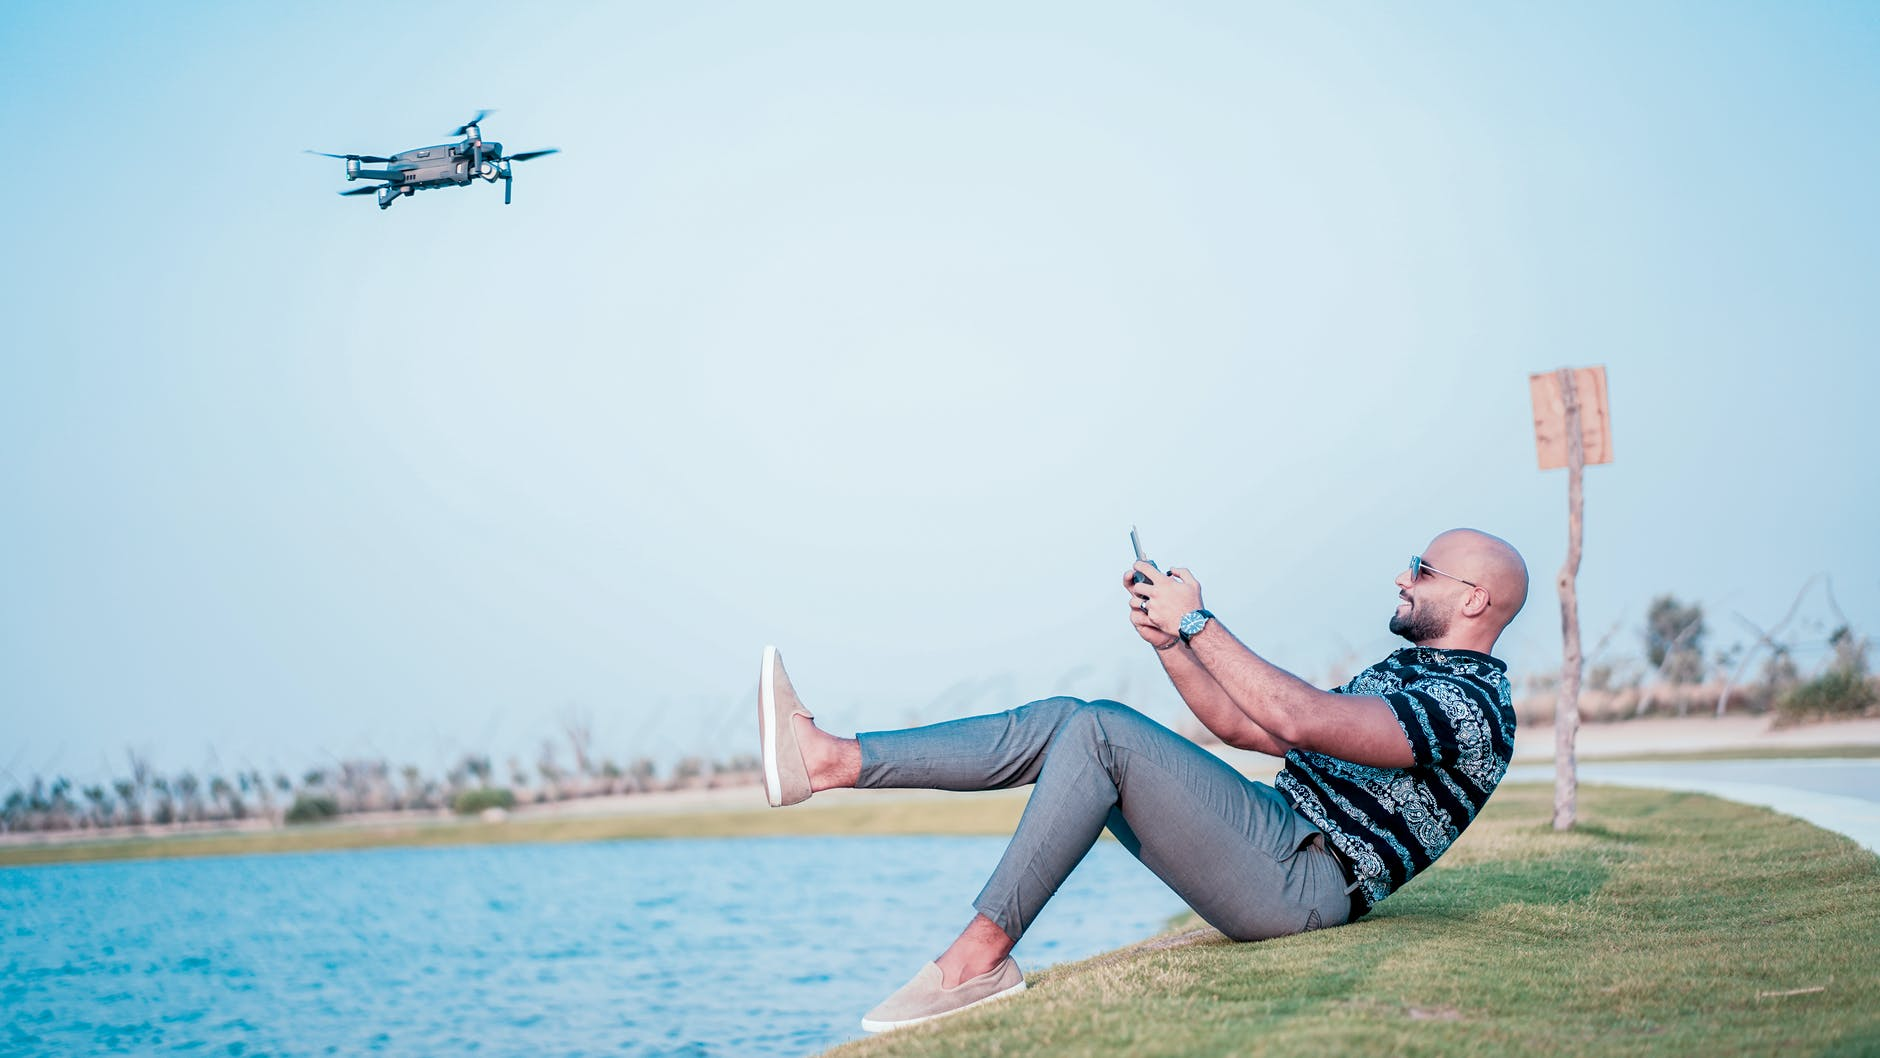 person sitting on the ground flying his drone